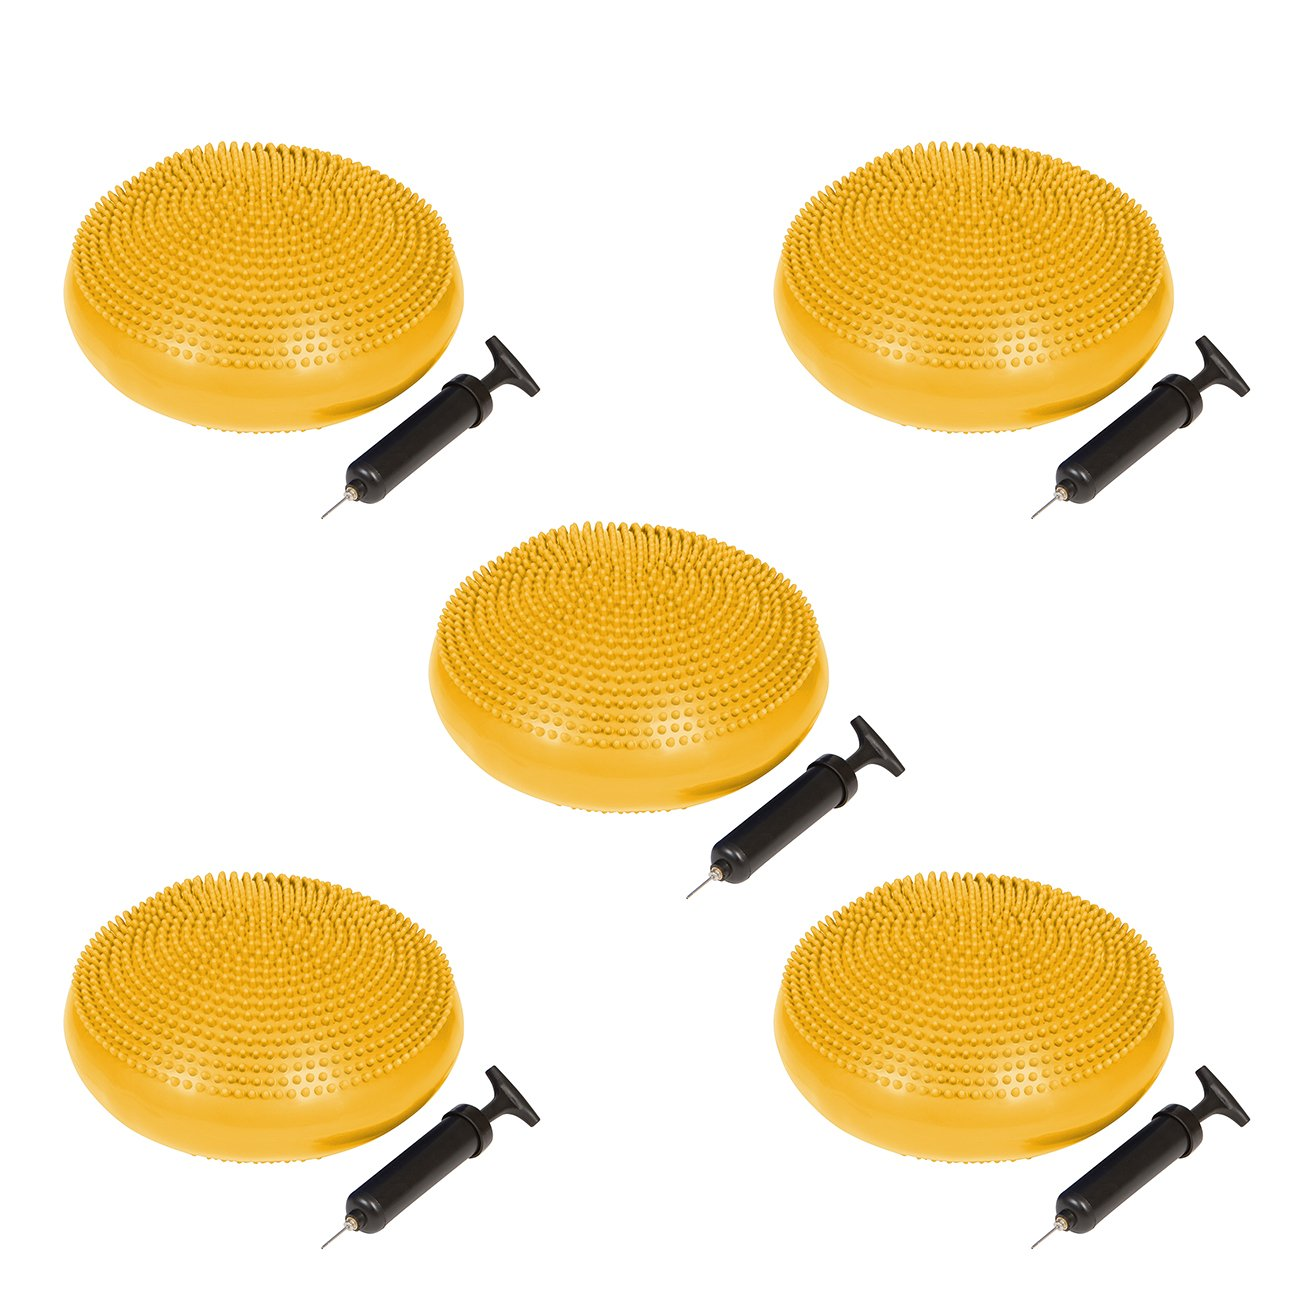 Trademark Innovations PVC Fitness and Balance Disc - 13-Inch Diameter - Set of 5 - (Yellow)